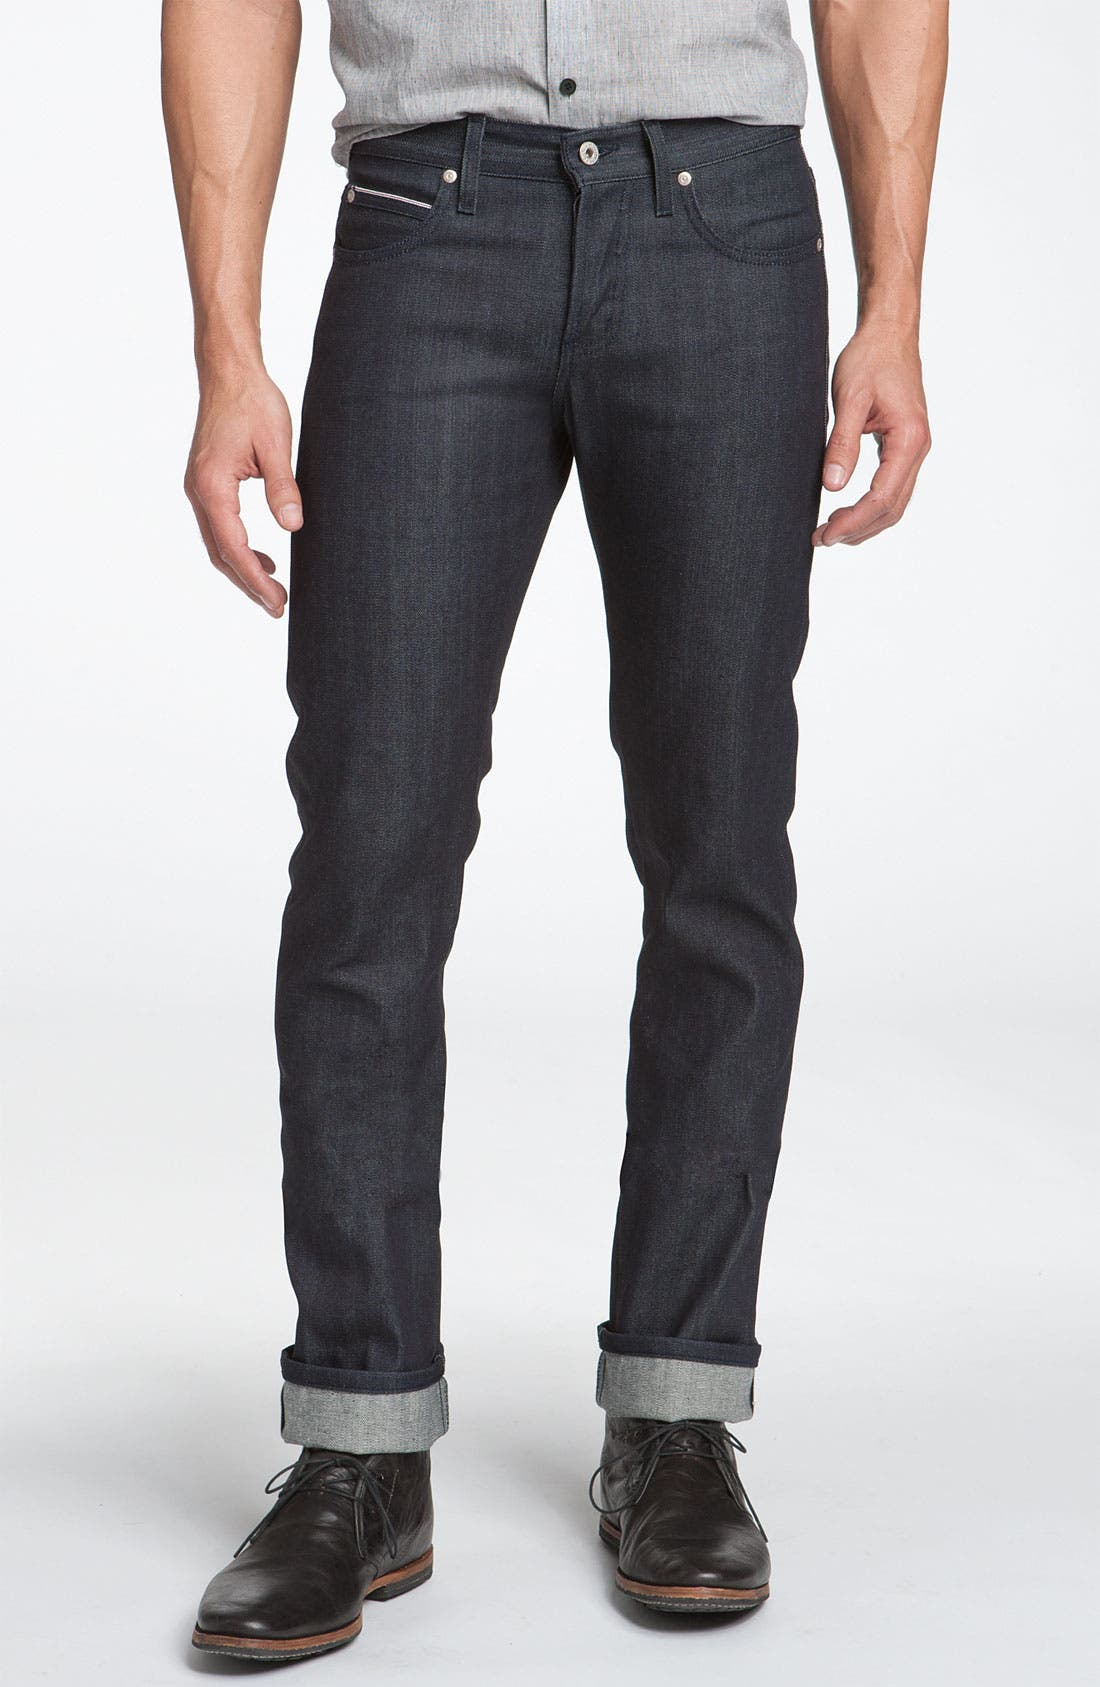 Naked & Famous 'Skinny Guy' Jeans,                             Alternate thumbnail 2, color,                             401